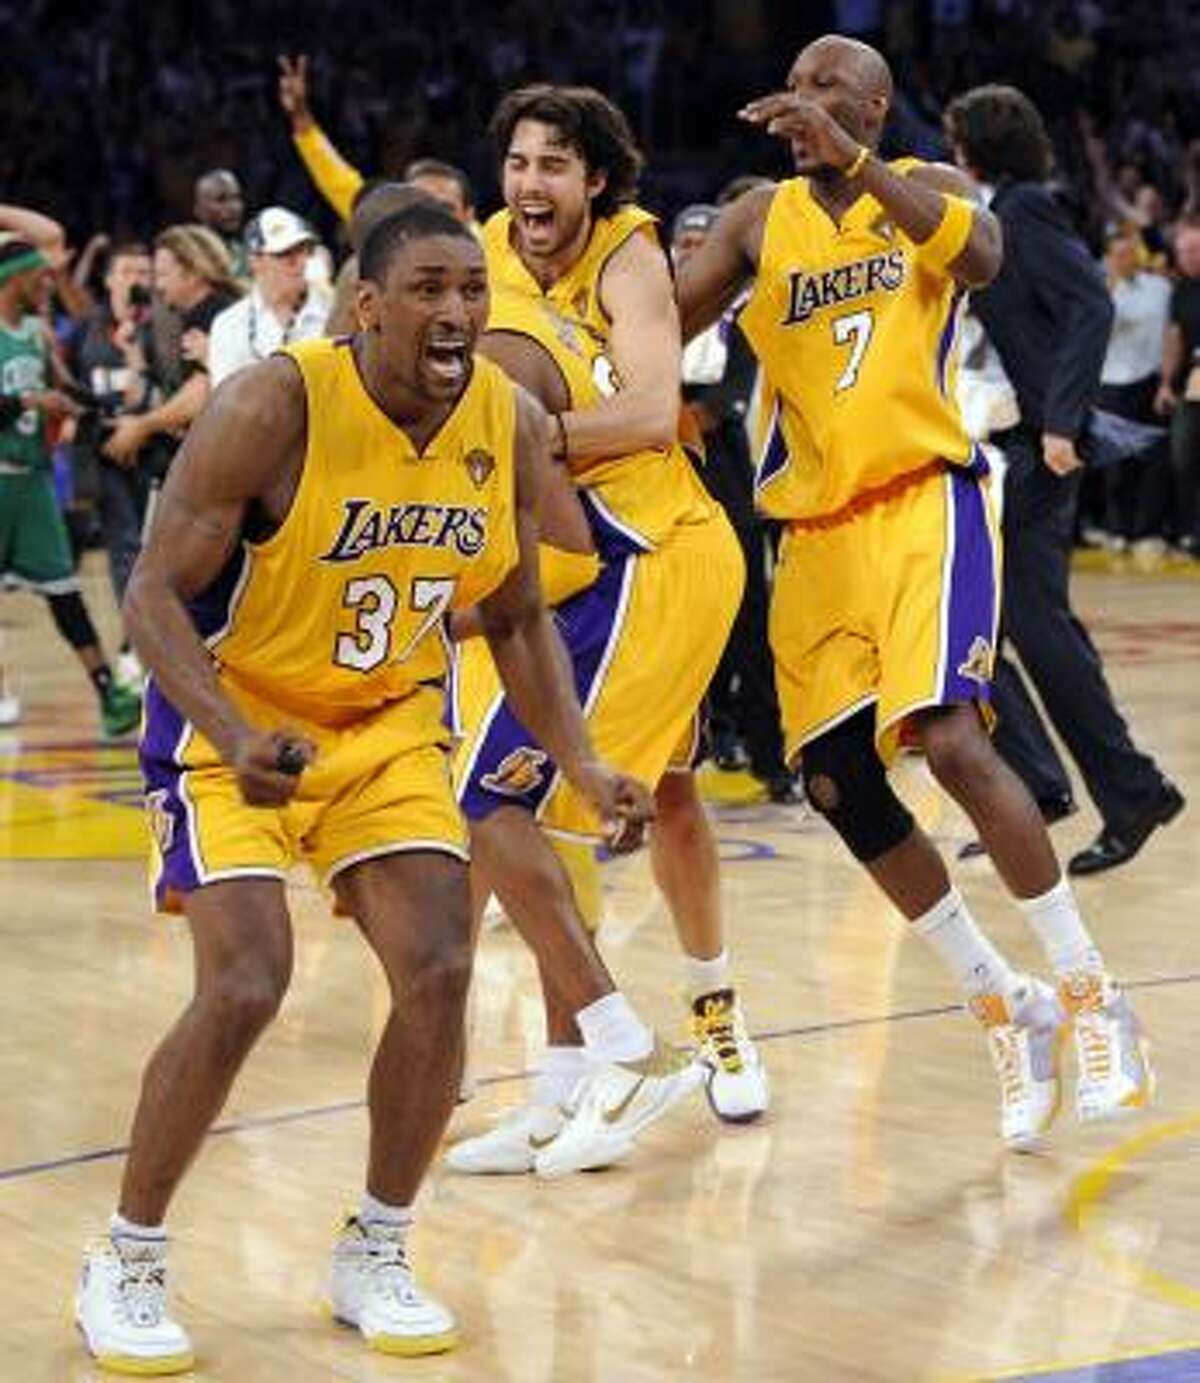 Lakers forward Ron Artest (37), Sasha Vujacic and Lamar Odom, right celebrate after the Lakers beat the Celtics 83-79 in Game 7.